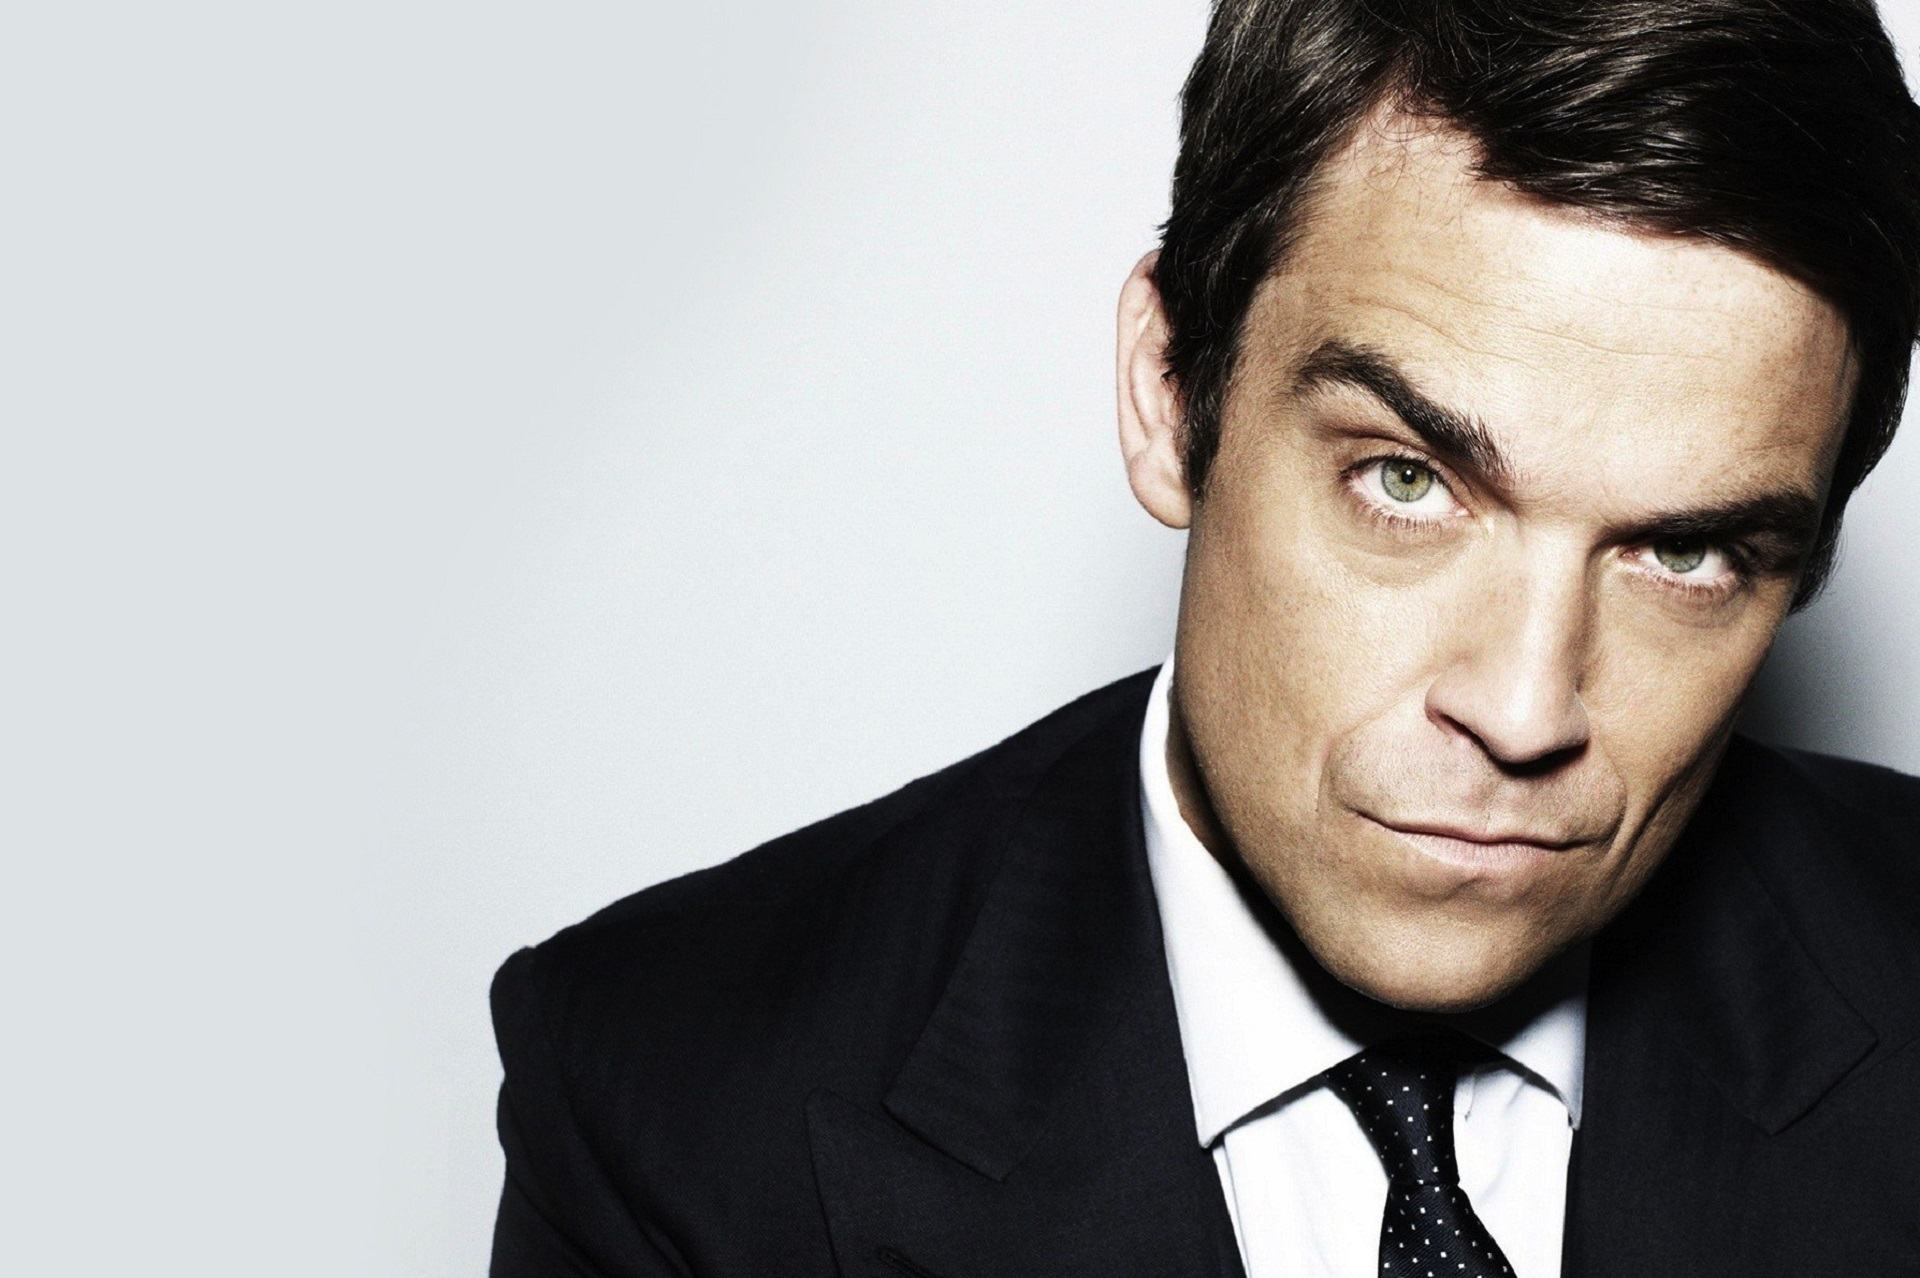 Robbie Williams Wallpaper For Laptop